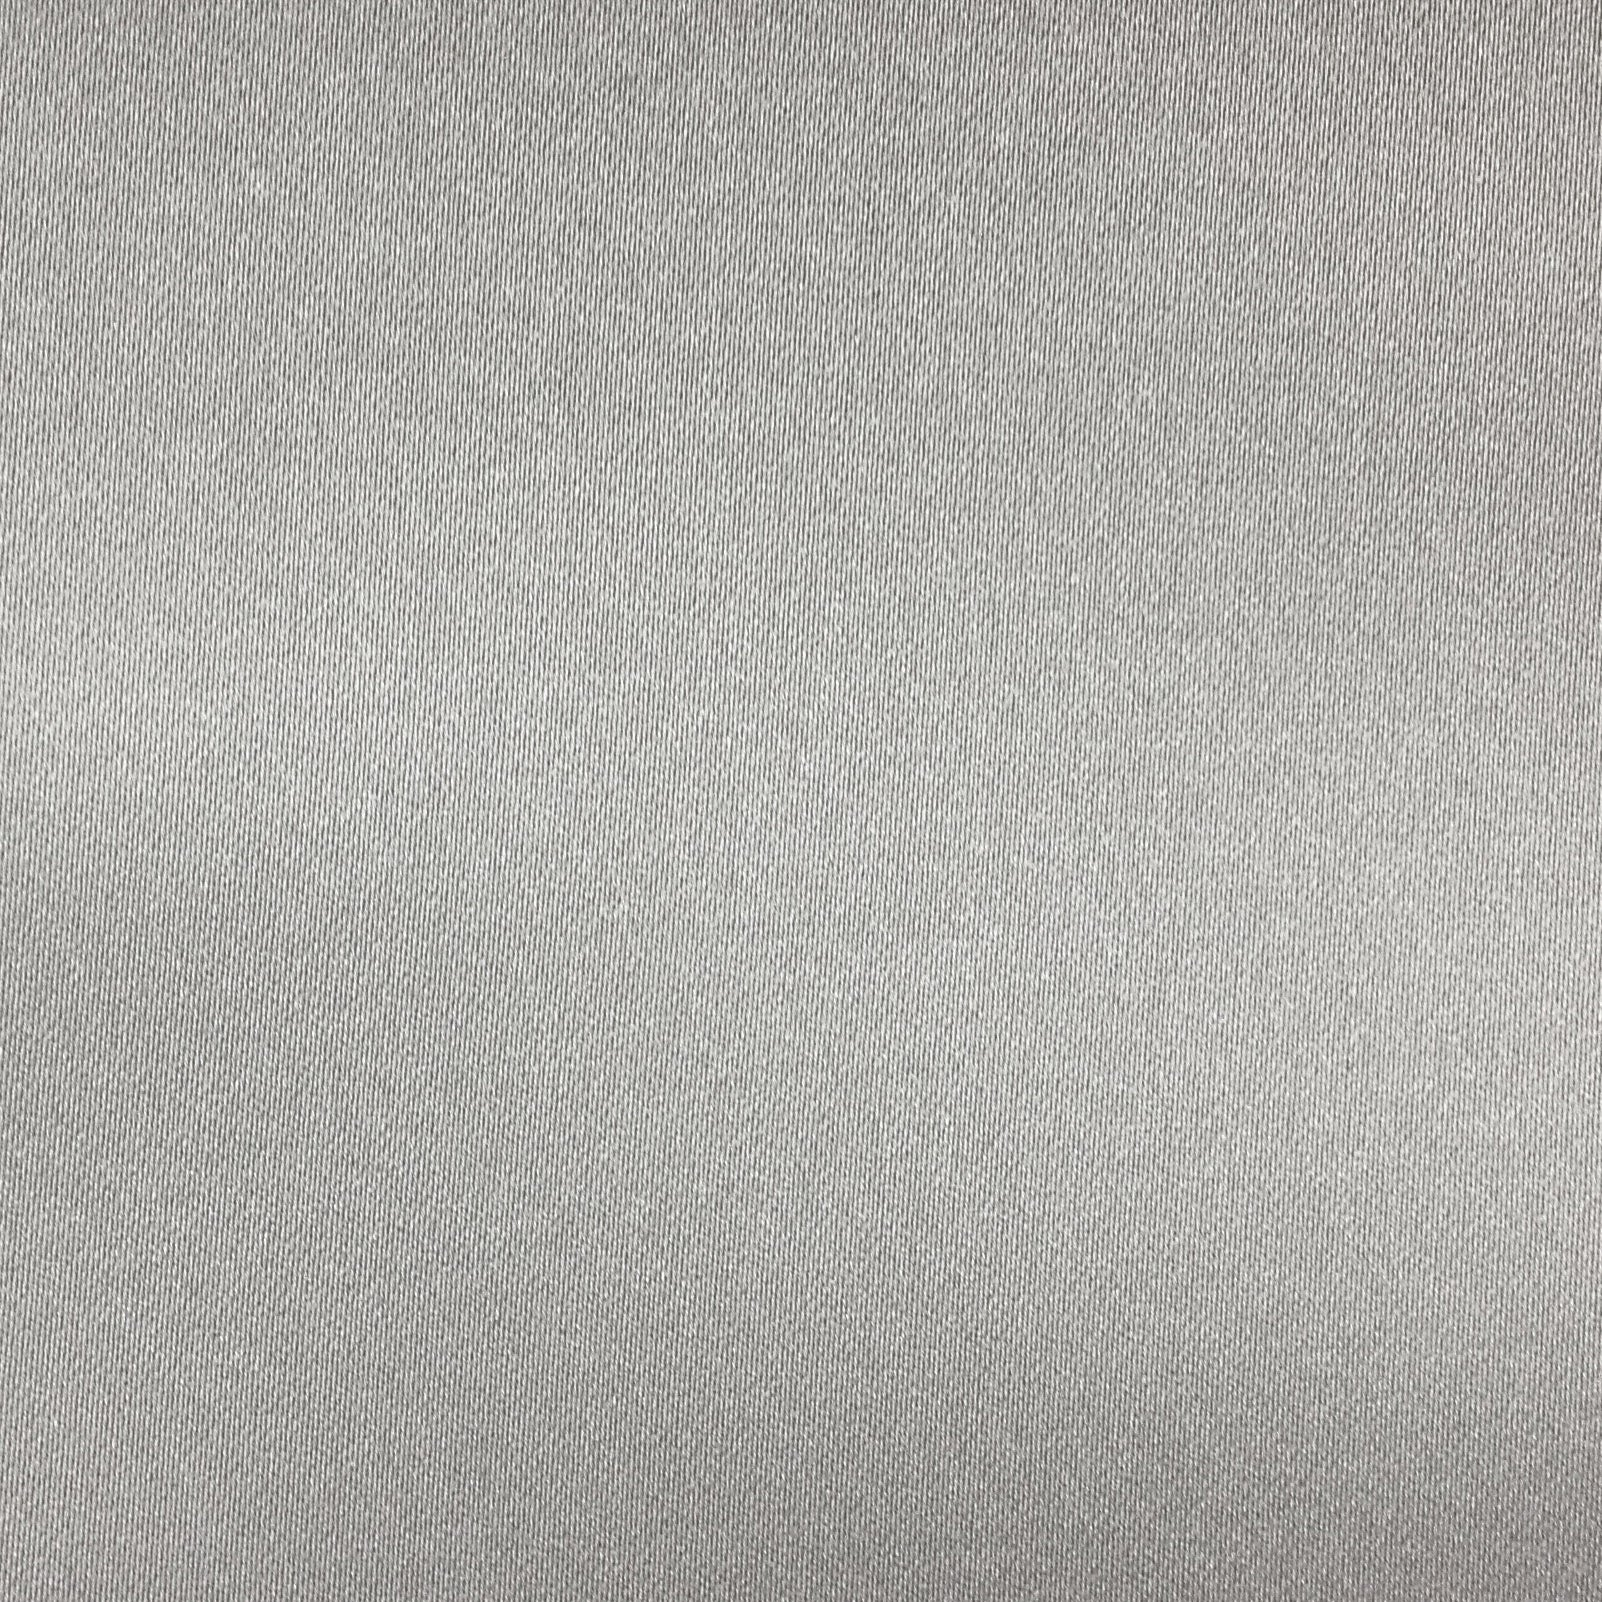 Photo of Otter rossana fabric silver